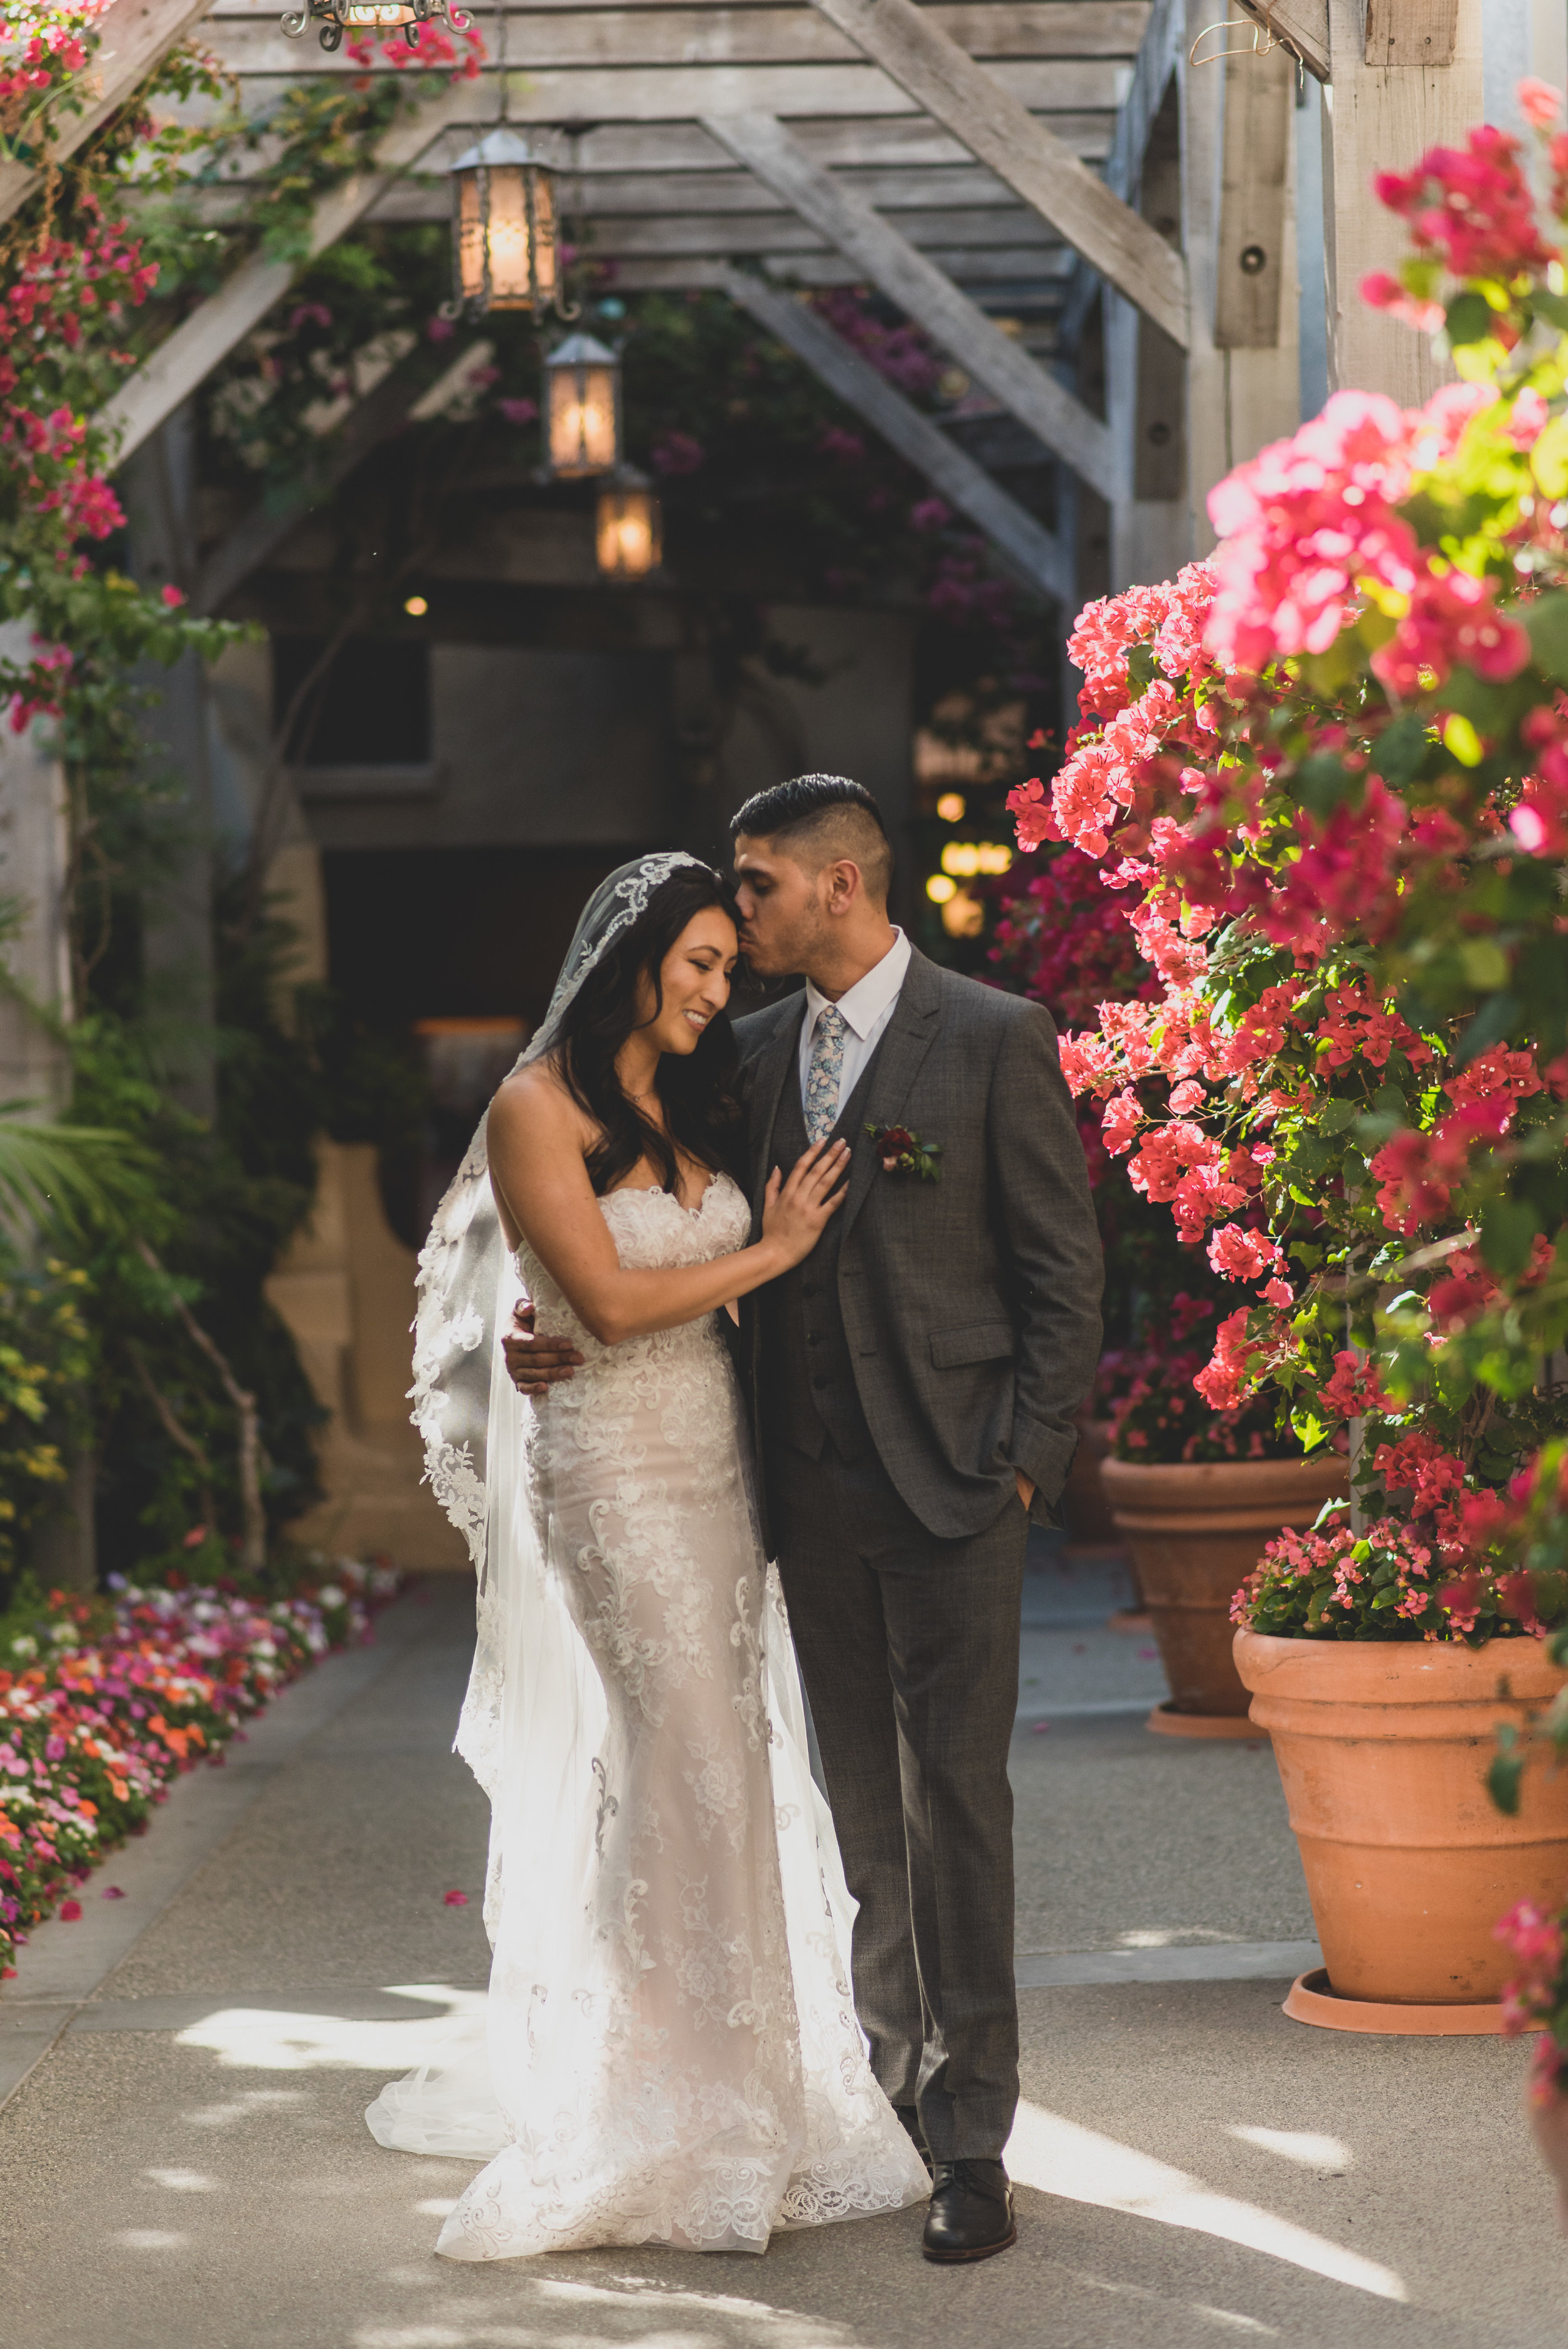 A groom kissing his bride on the forehead in a garden walkway of flowers.